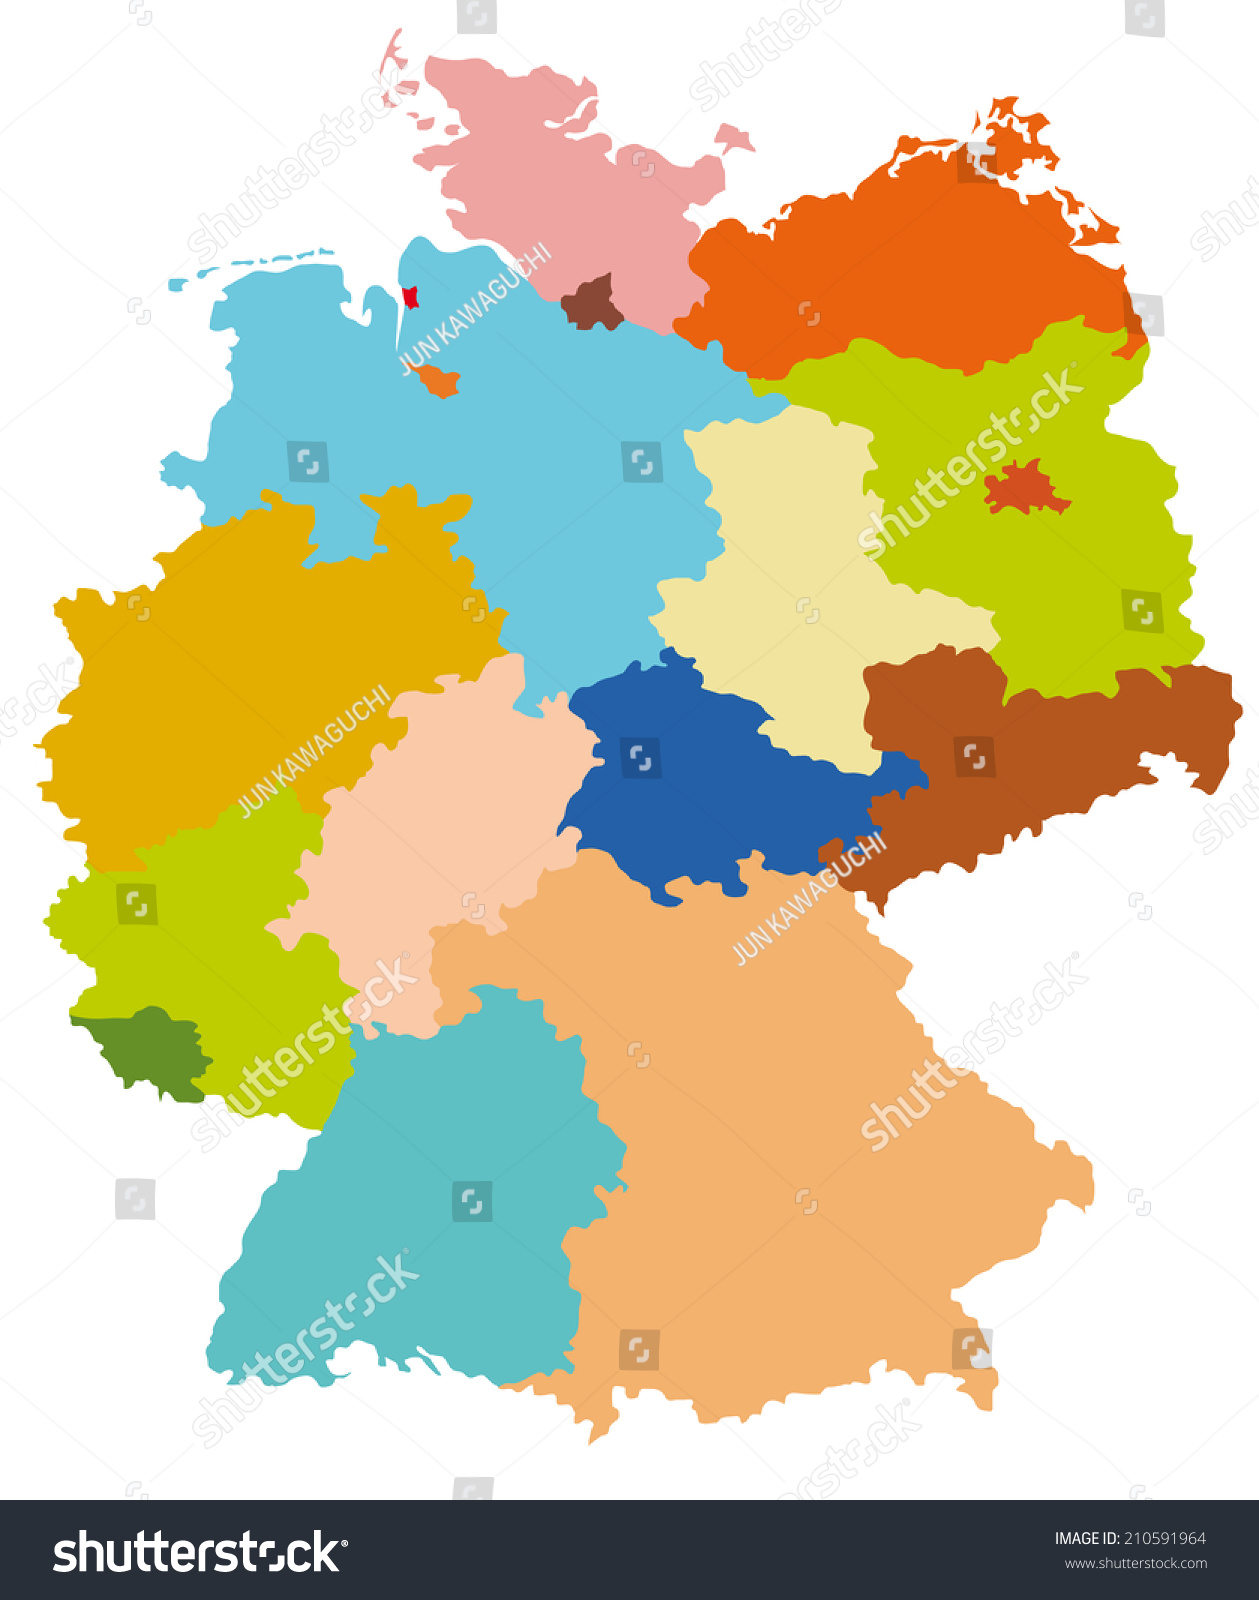 Simple Map Germany Stock Vector Shutterstock - Germany map simple